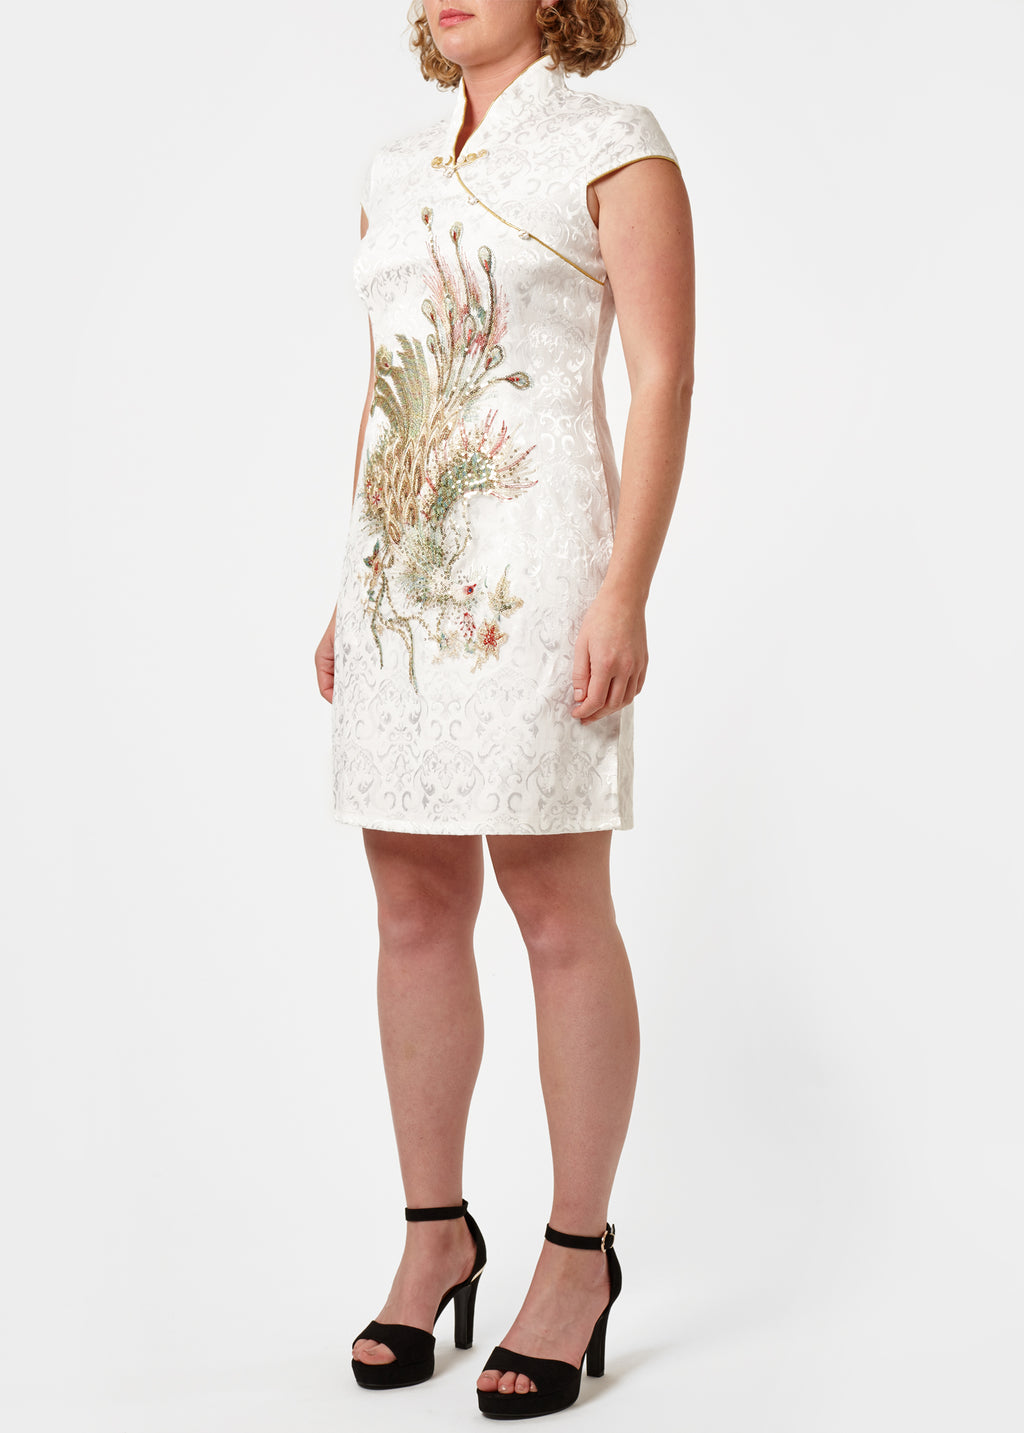 The Cheongsam or Qipao, is a feminine body-hugging dress with distinctive Chinese features of mandarin collar, side splits and hand stitched flower and knot frog fastenings. Manufactured in a classic ivory stretch cotton jacquard with a sequinned, gold embroidered peacock applique and gold piping. Invisible back zip